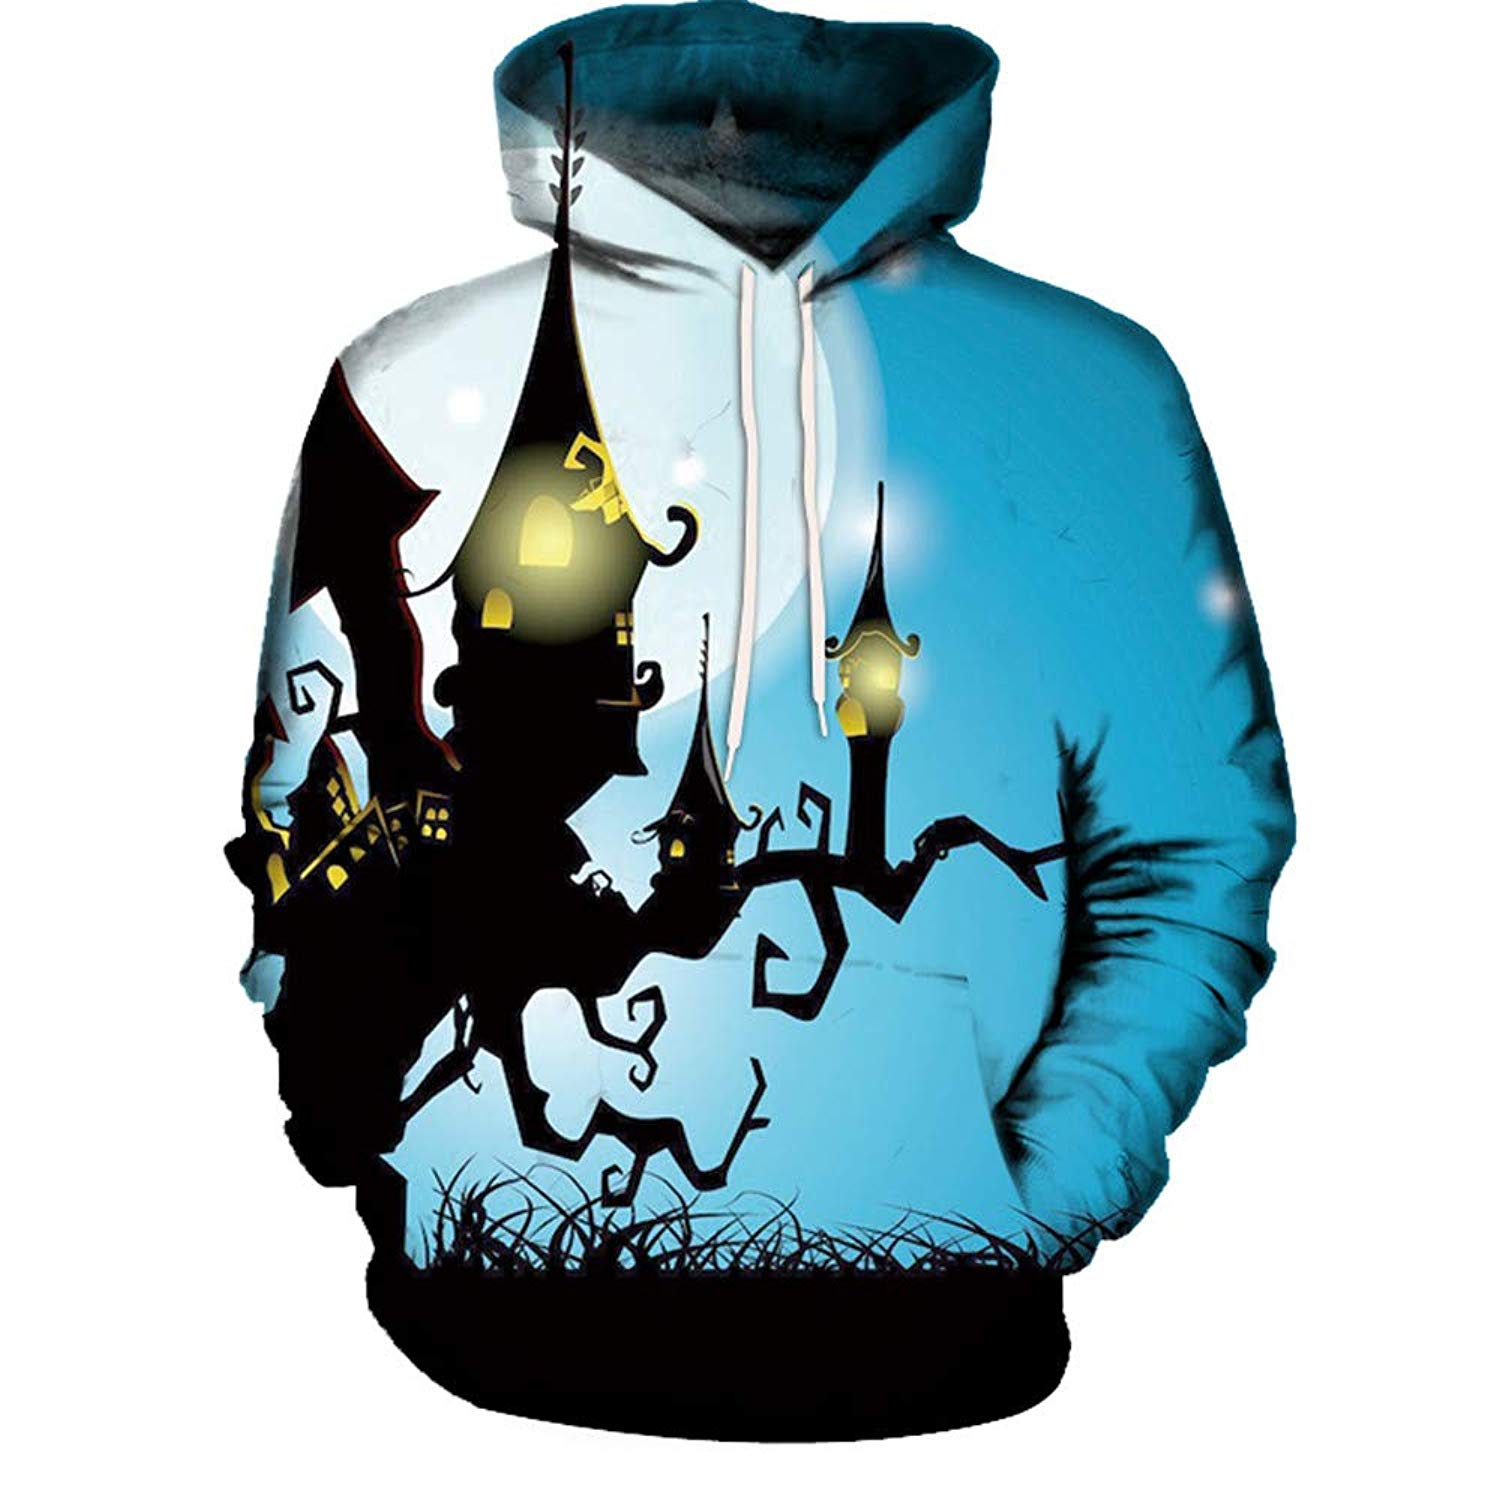 Zainafacai Fashion Print Hoodie- Unisex Realistic 3D Digital Hooded Top Sweatshirt-Happy Halloween 2018/2019